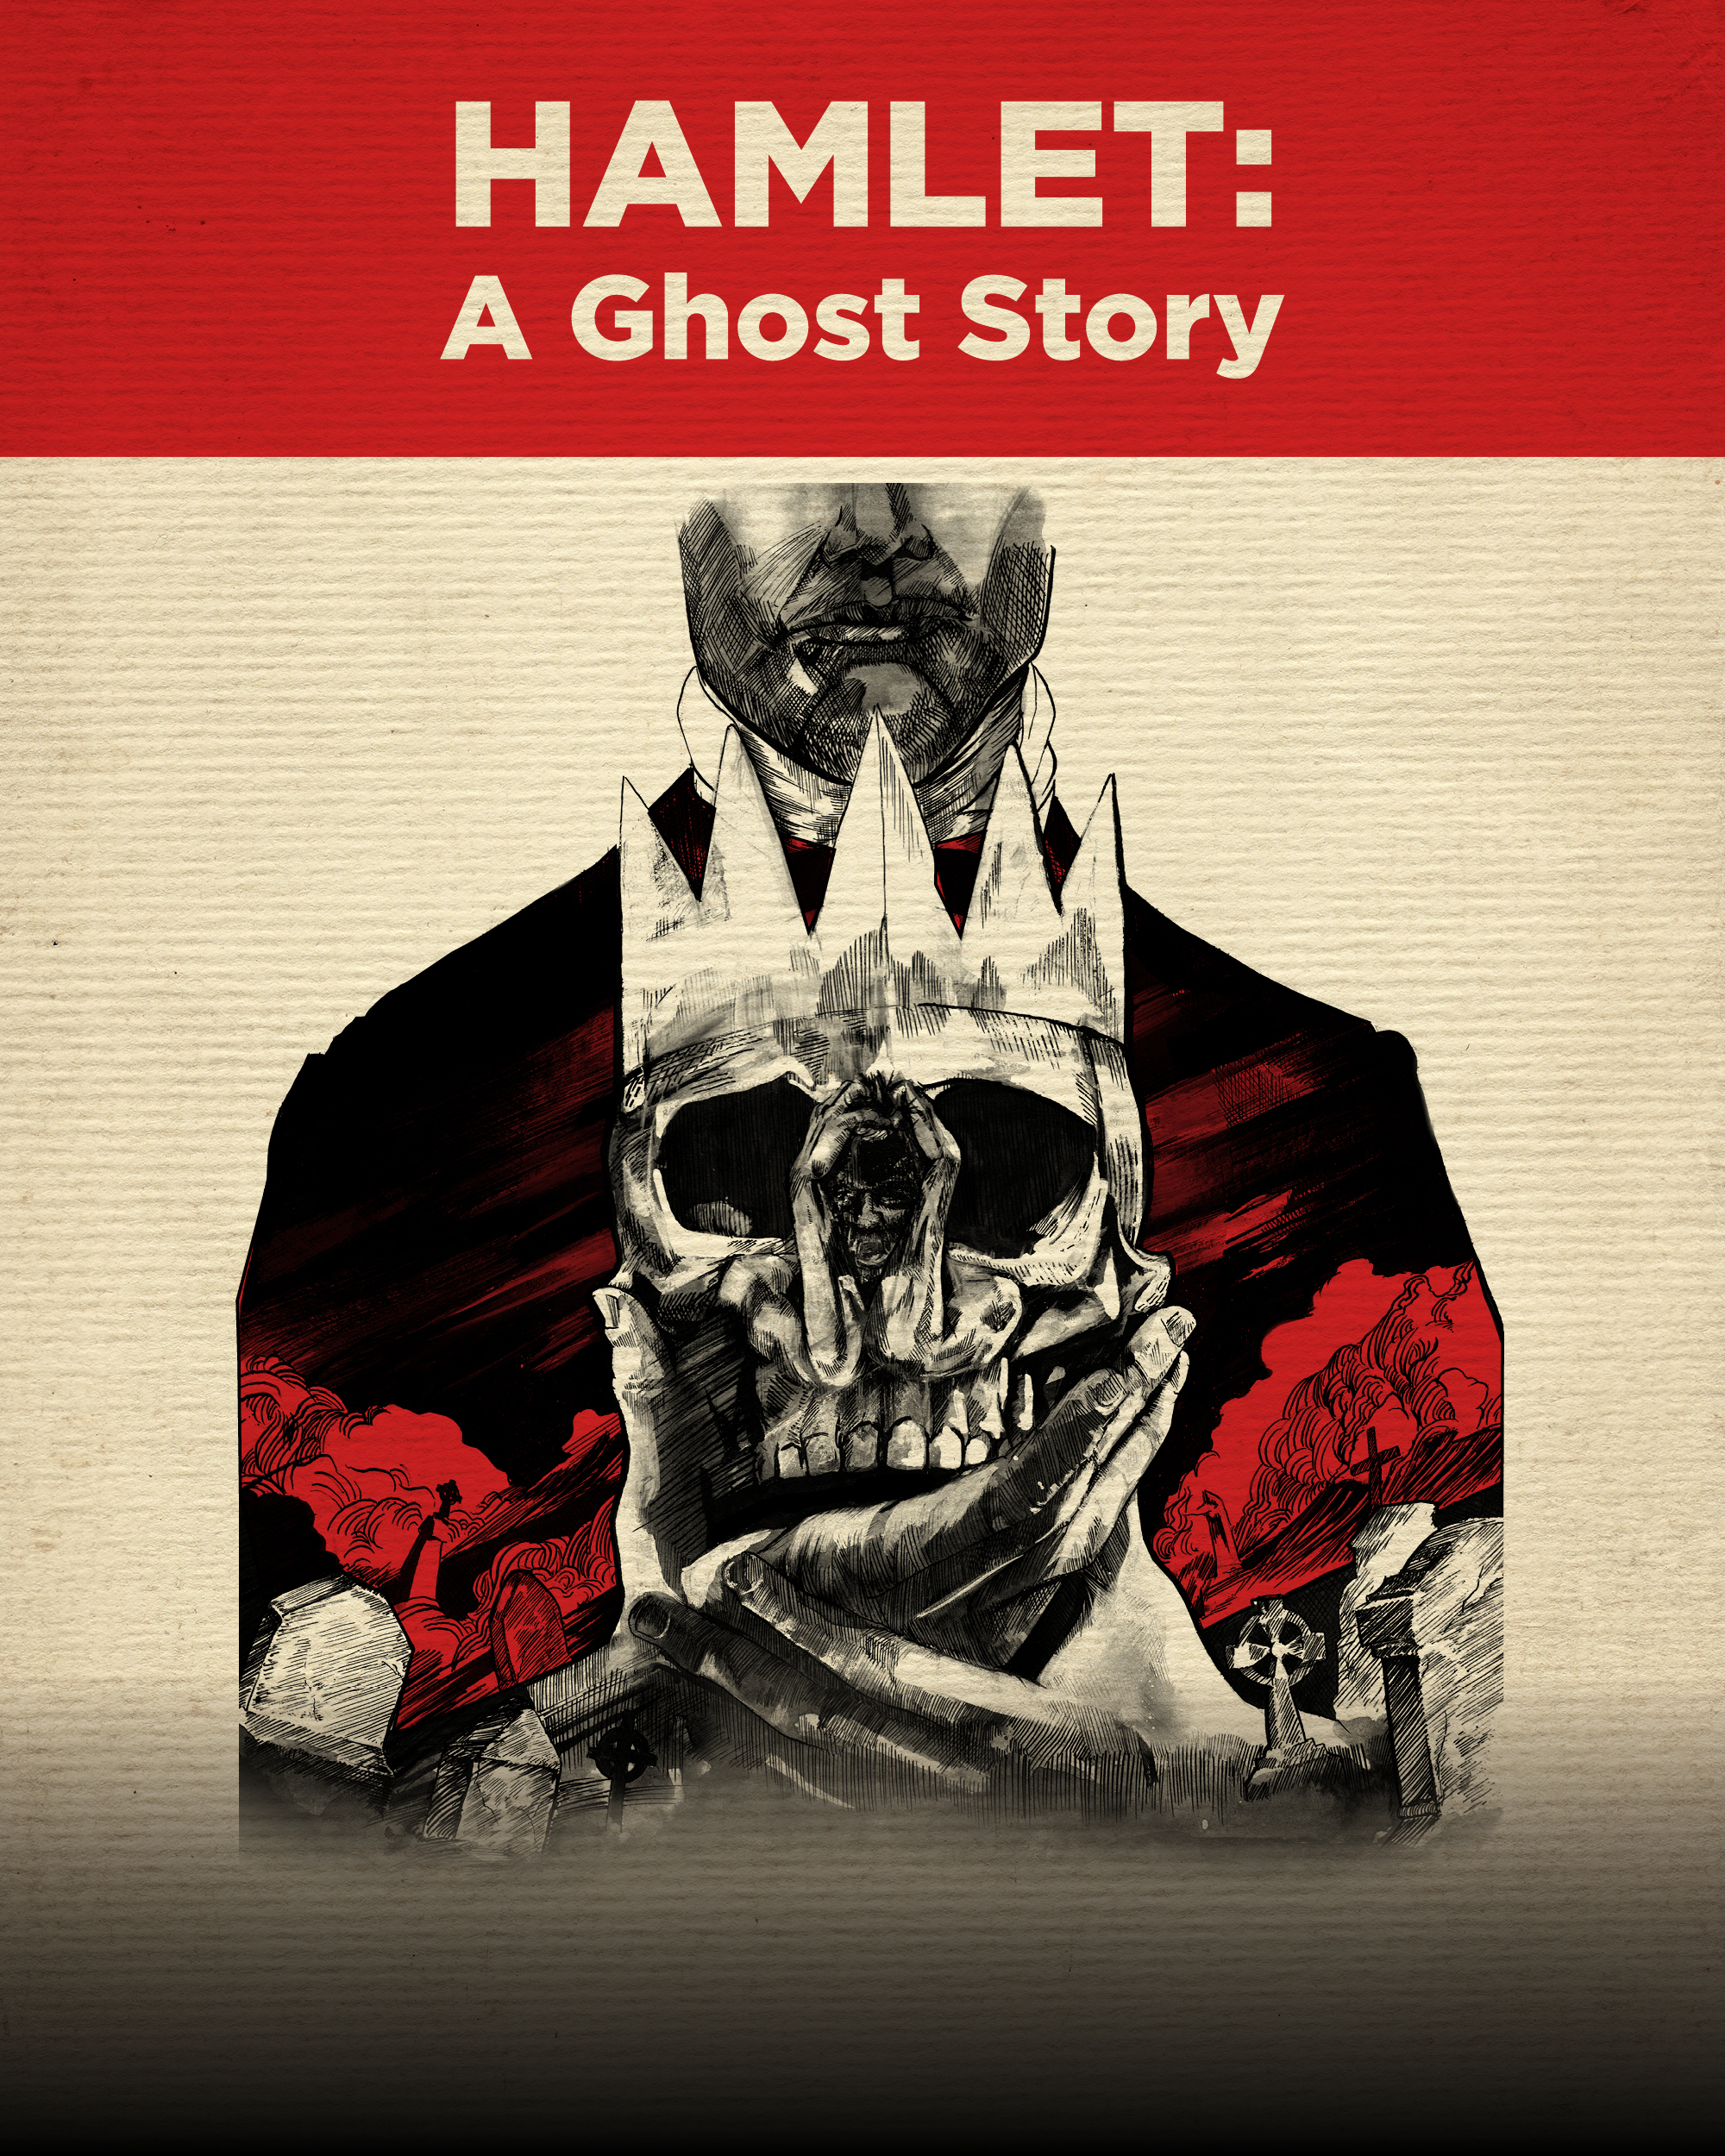 HAMLET: A GHOST STORY